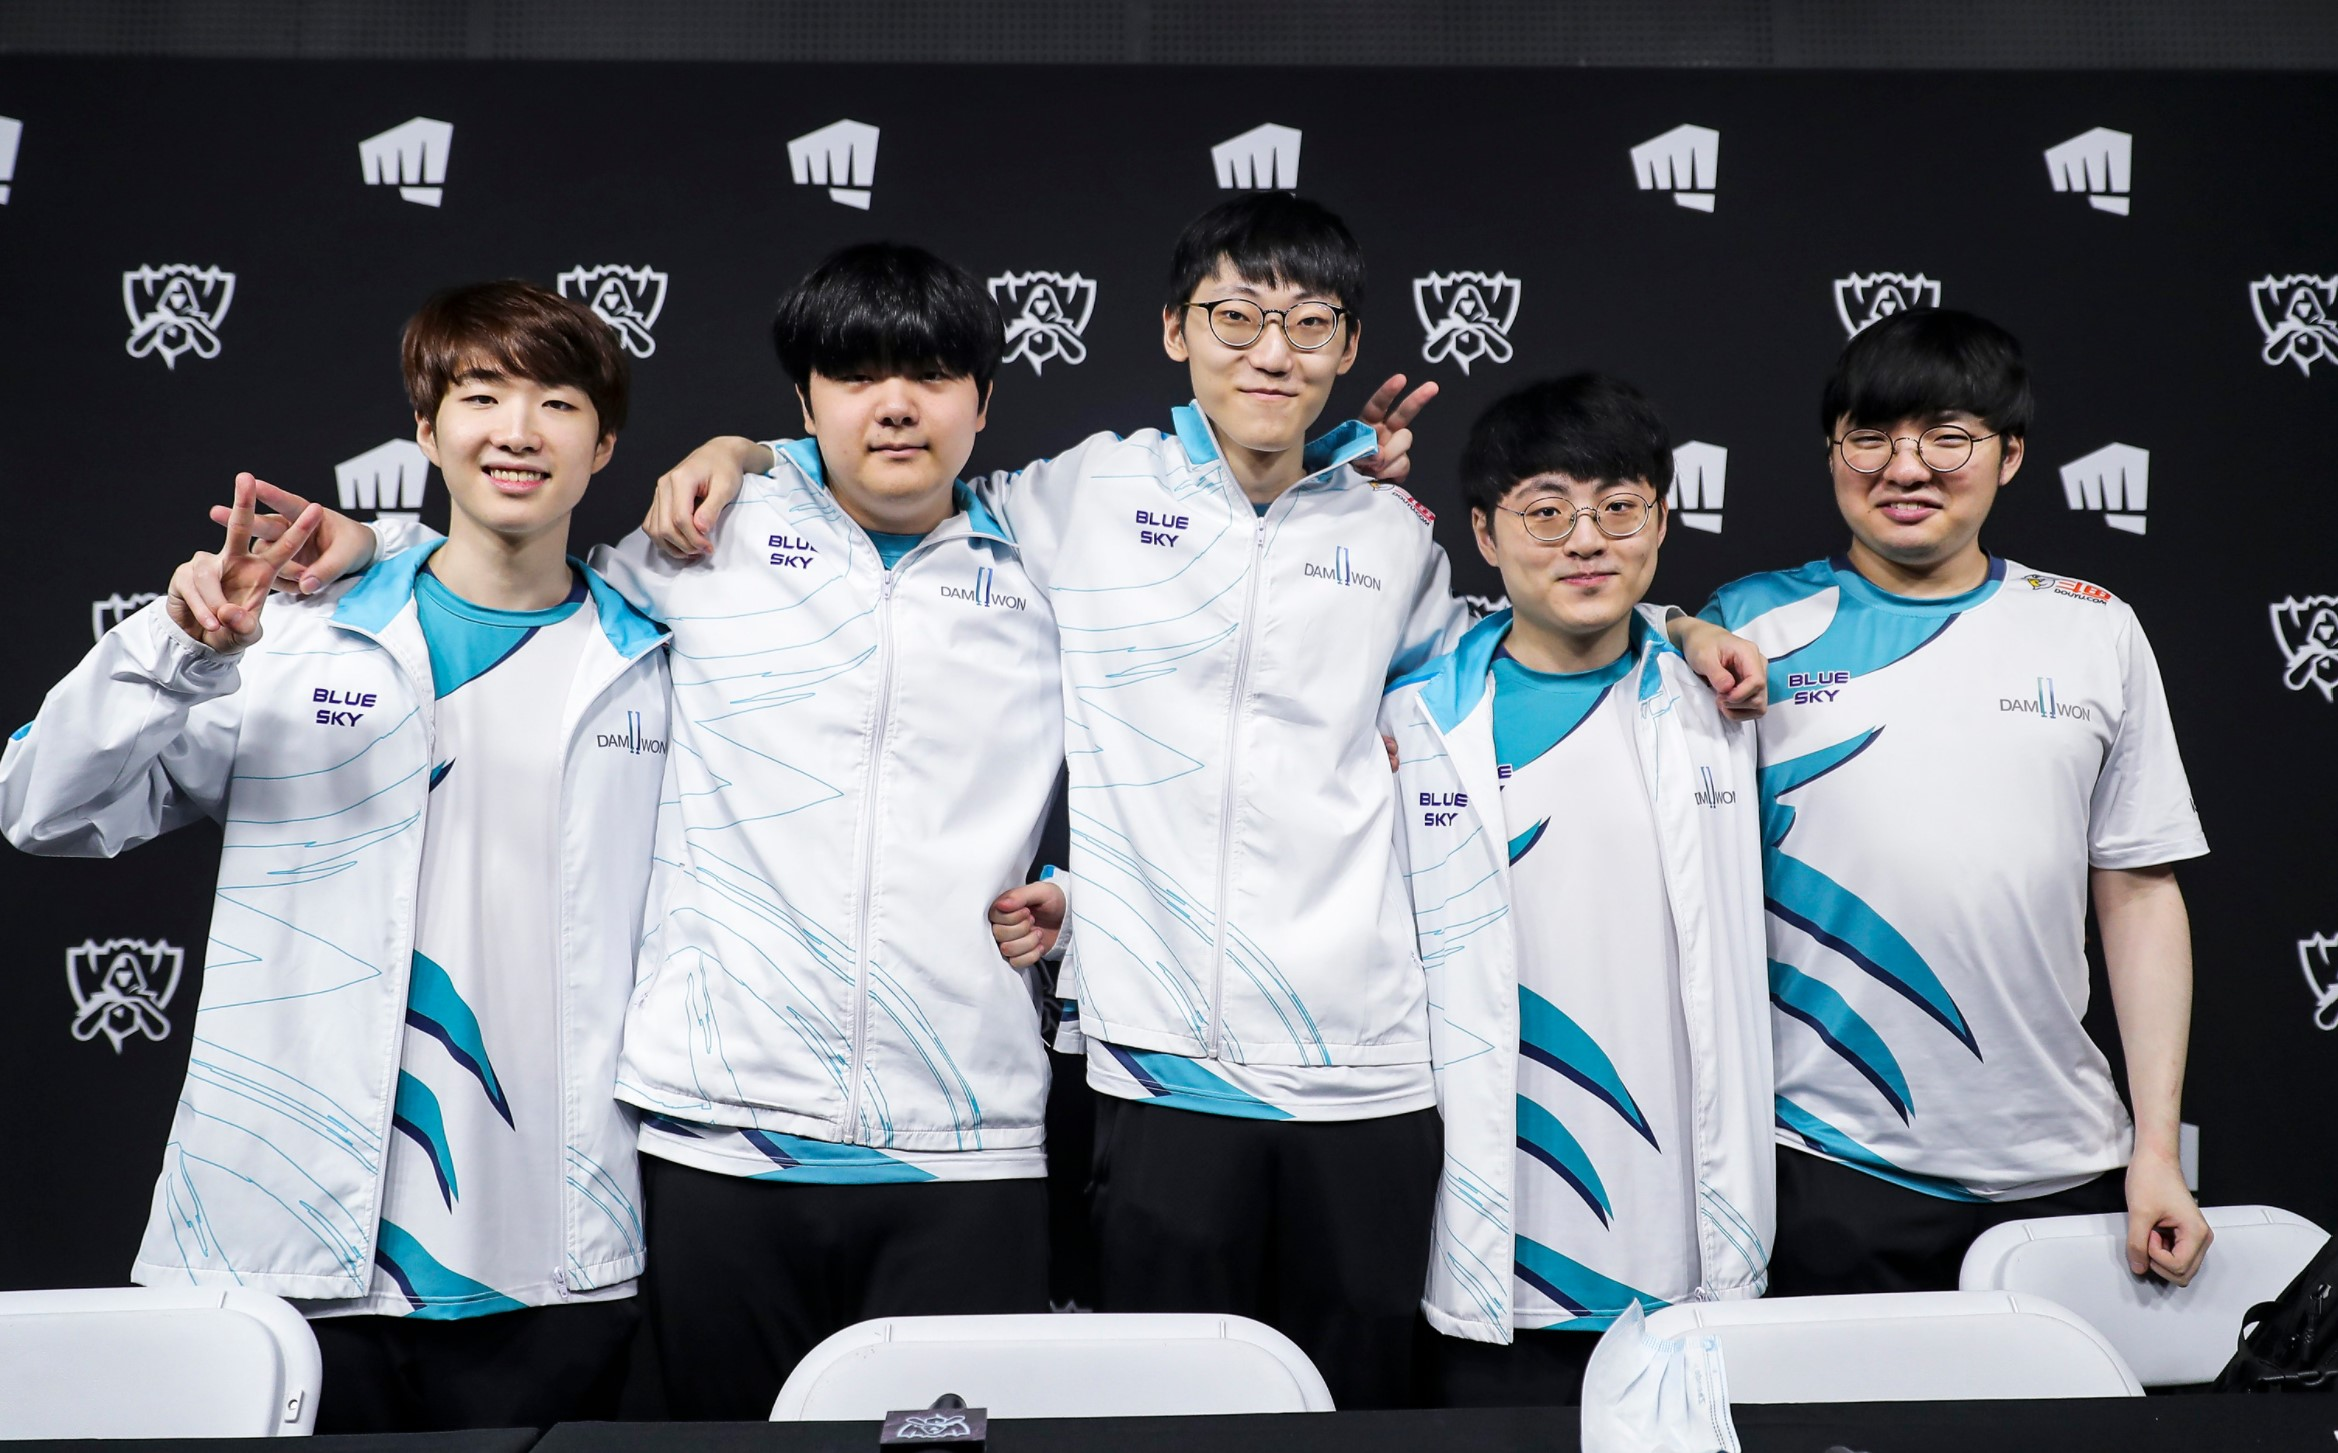 DAMWON Gaming topple over Suning in thrilling Worlds 2020 final, capture  Korea's first title in 3 years | Dot Esports